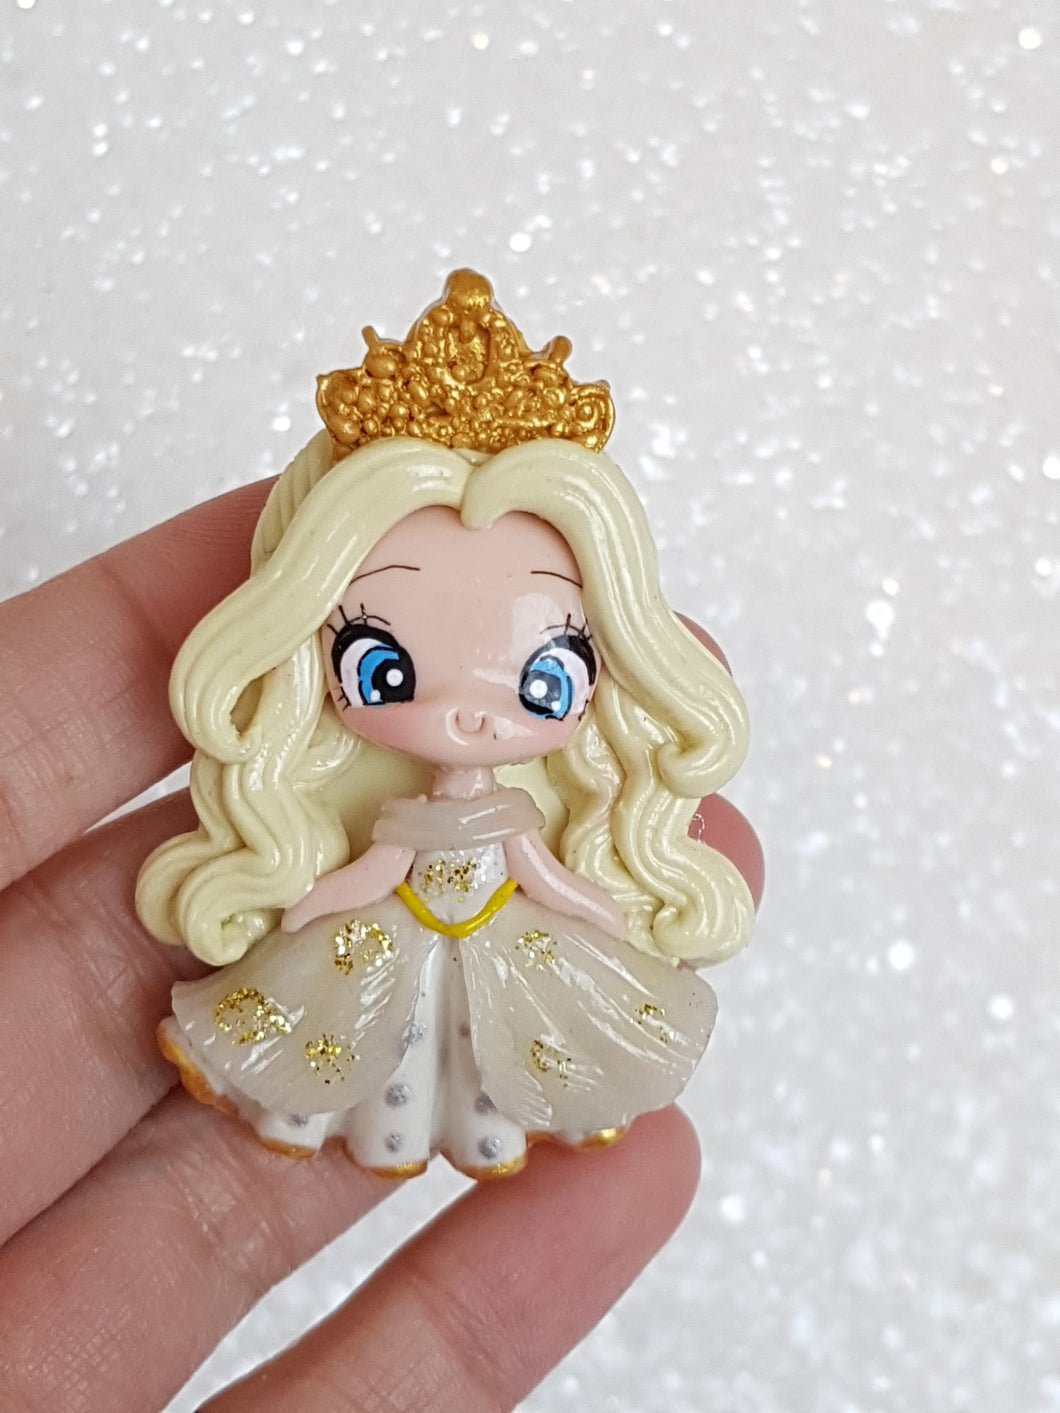 Clay Charm Embellishment - NEW LUXE PRINCESS IN WHITE - Crafty Mood